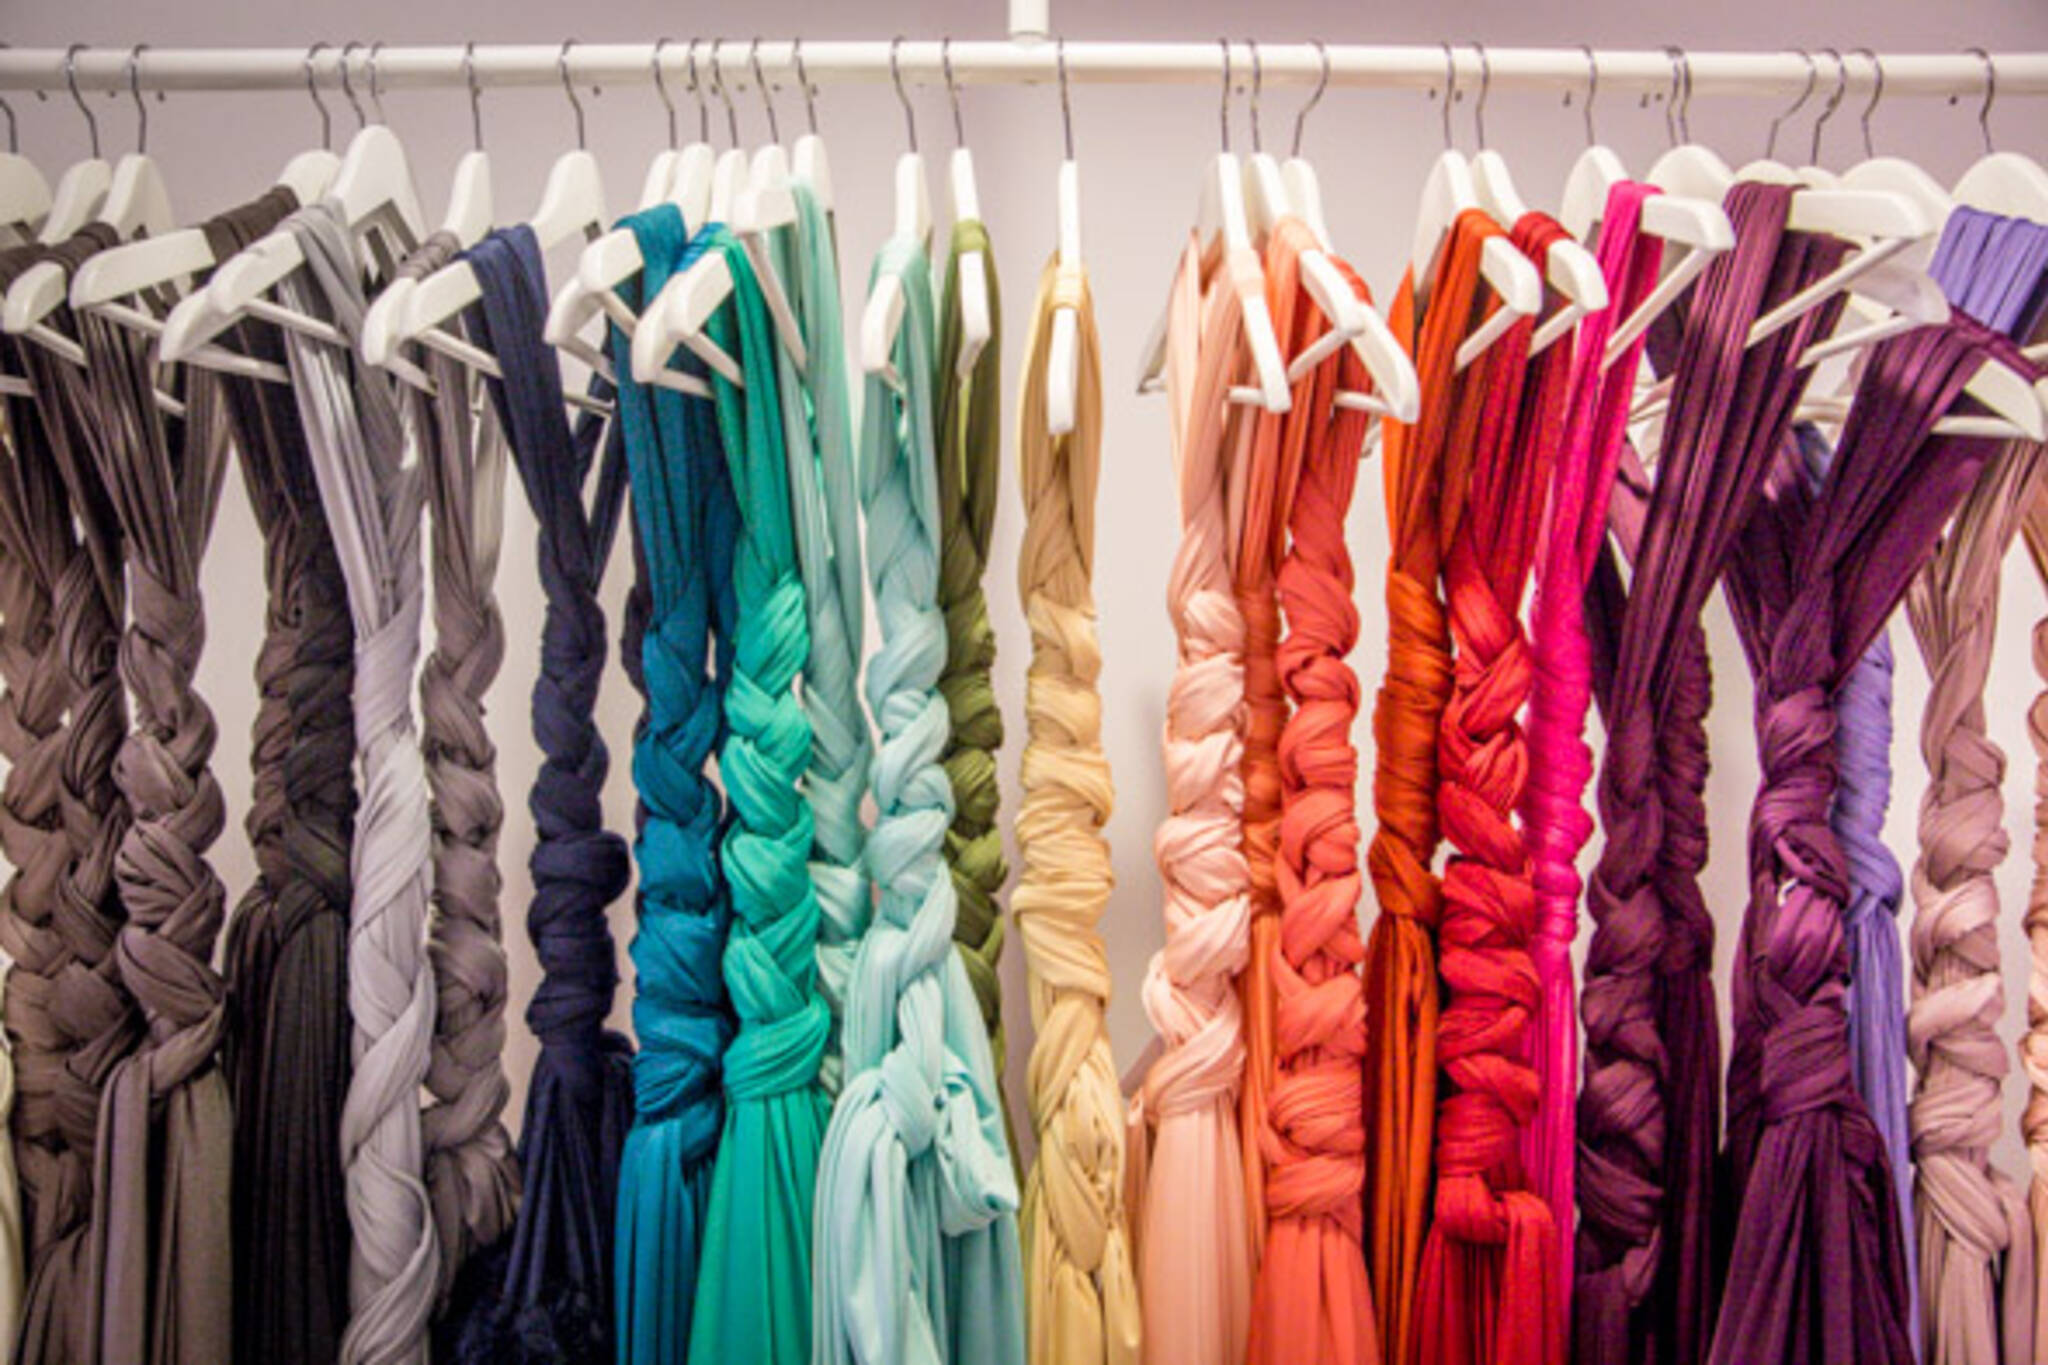 Easiest clothing stores to shoplift from